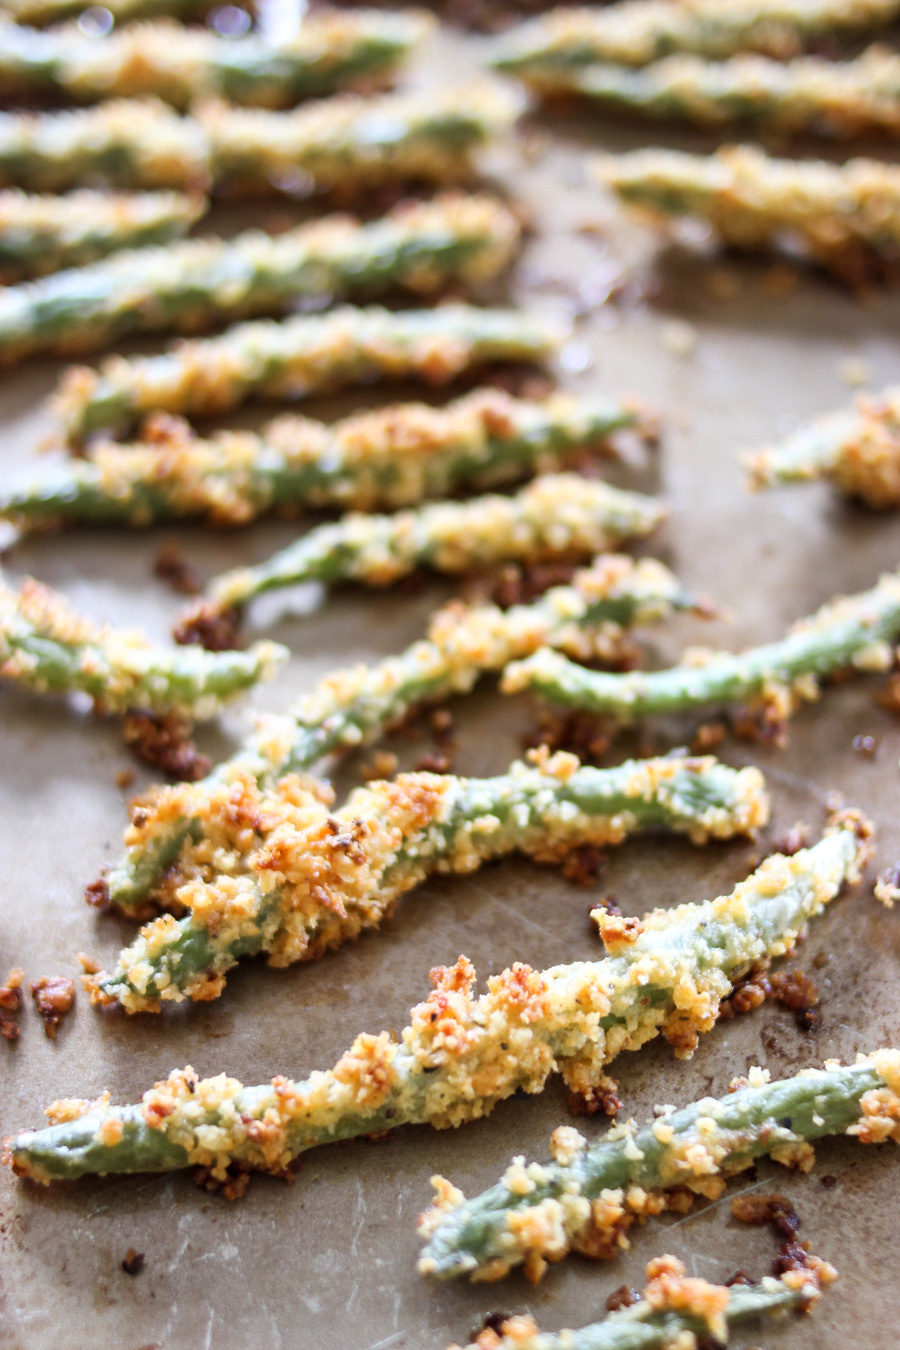 Baked Green Bean Fries with Zesty Horseradish Dipping Sauce